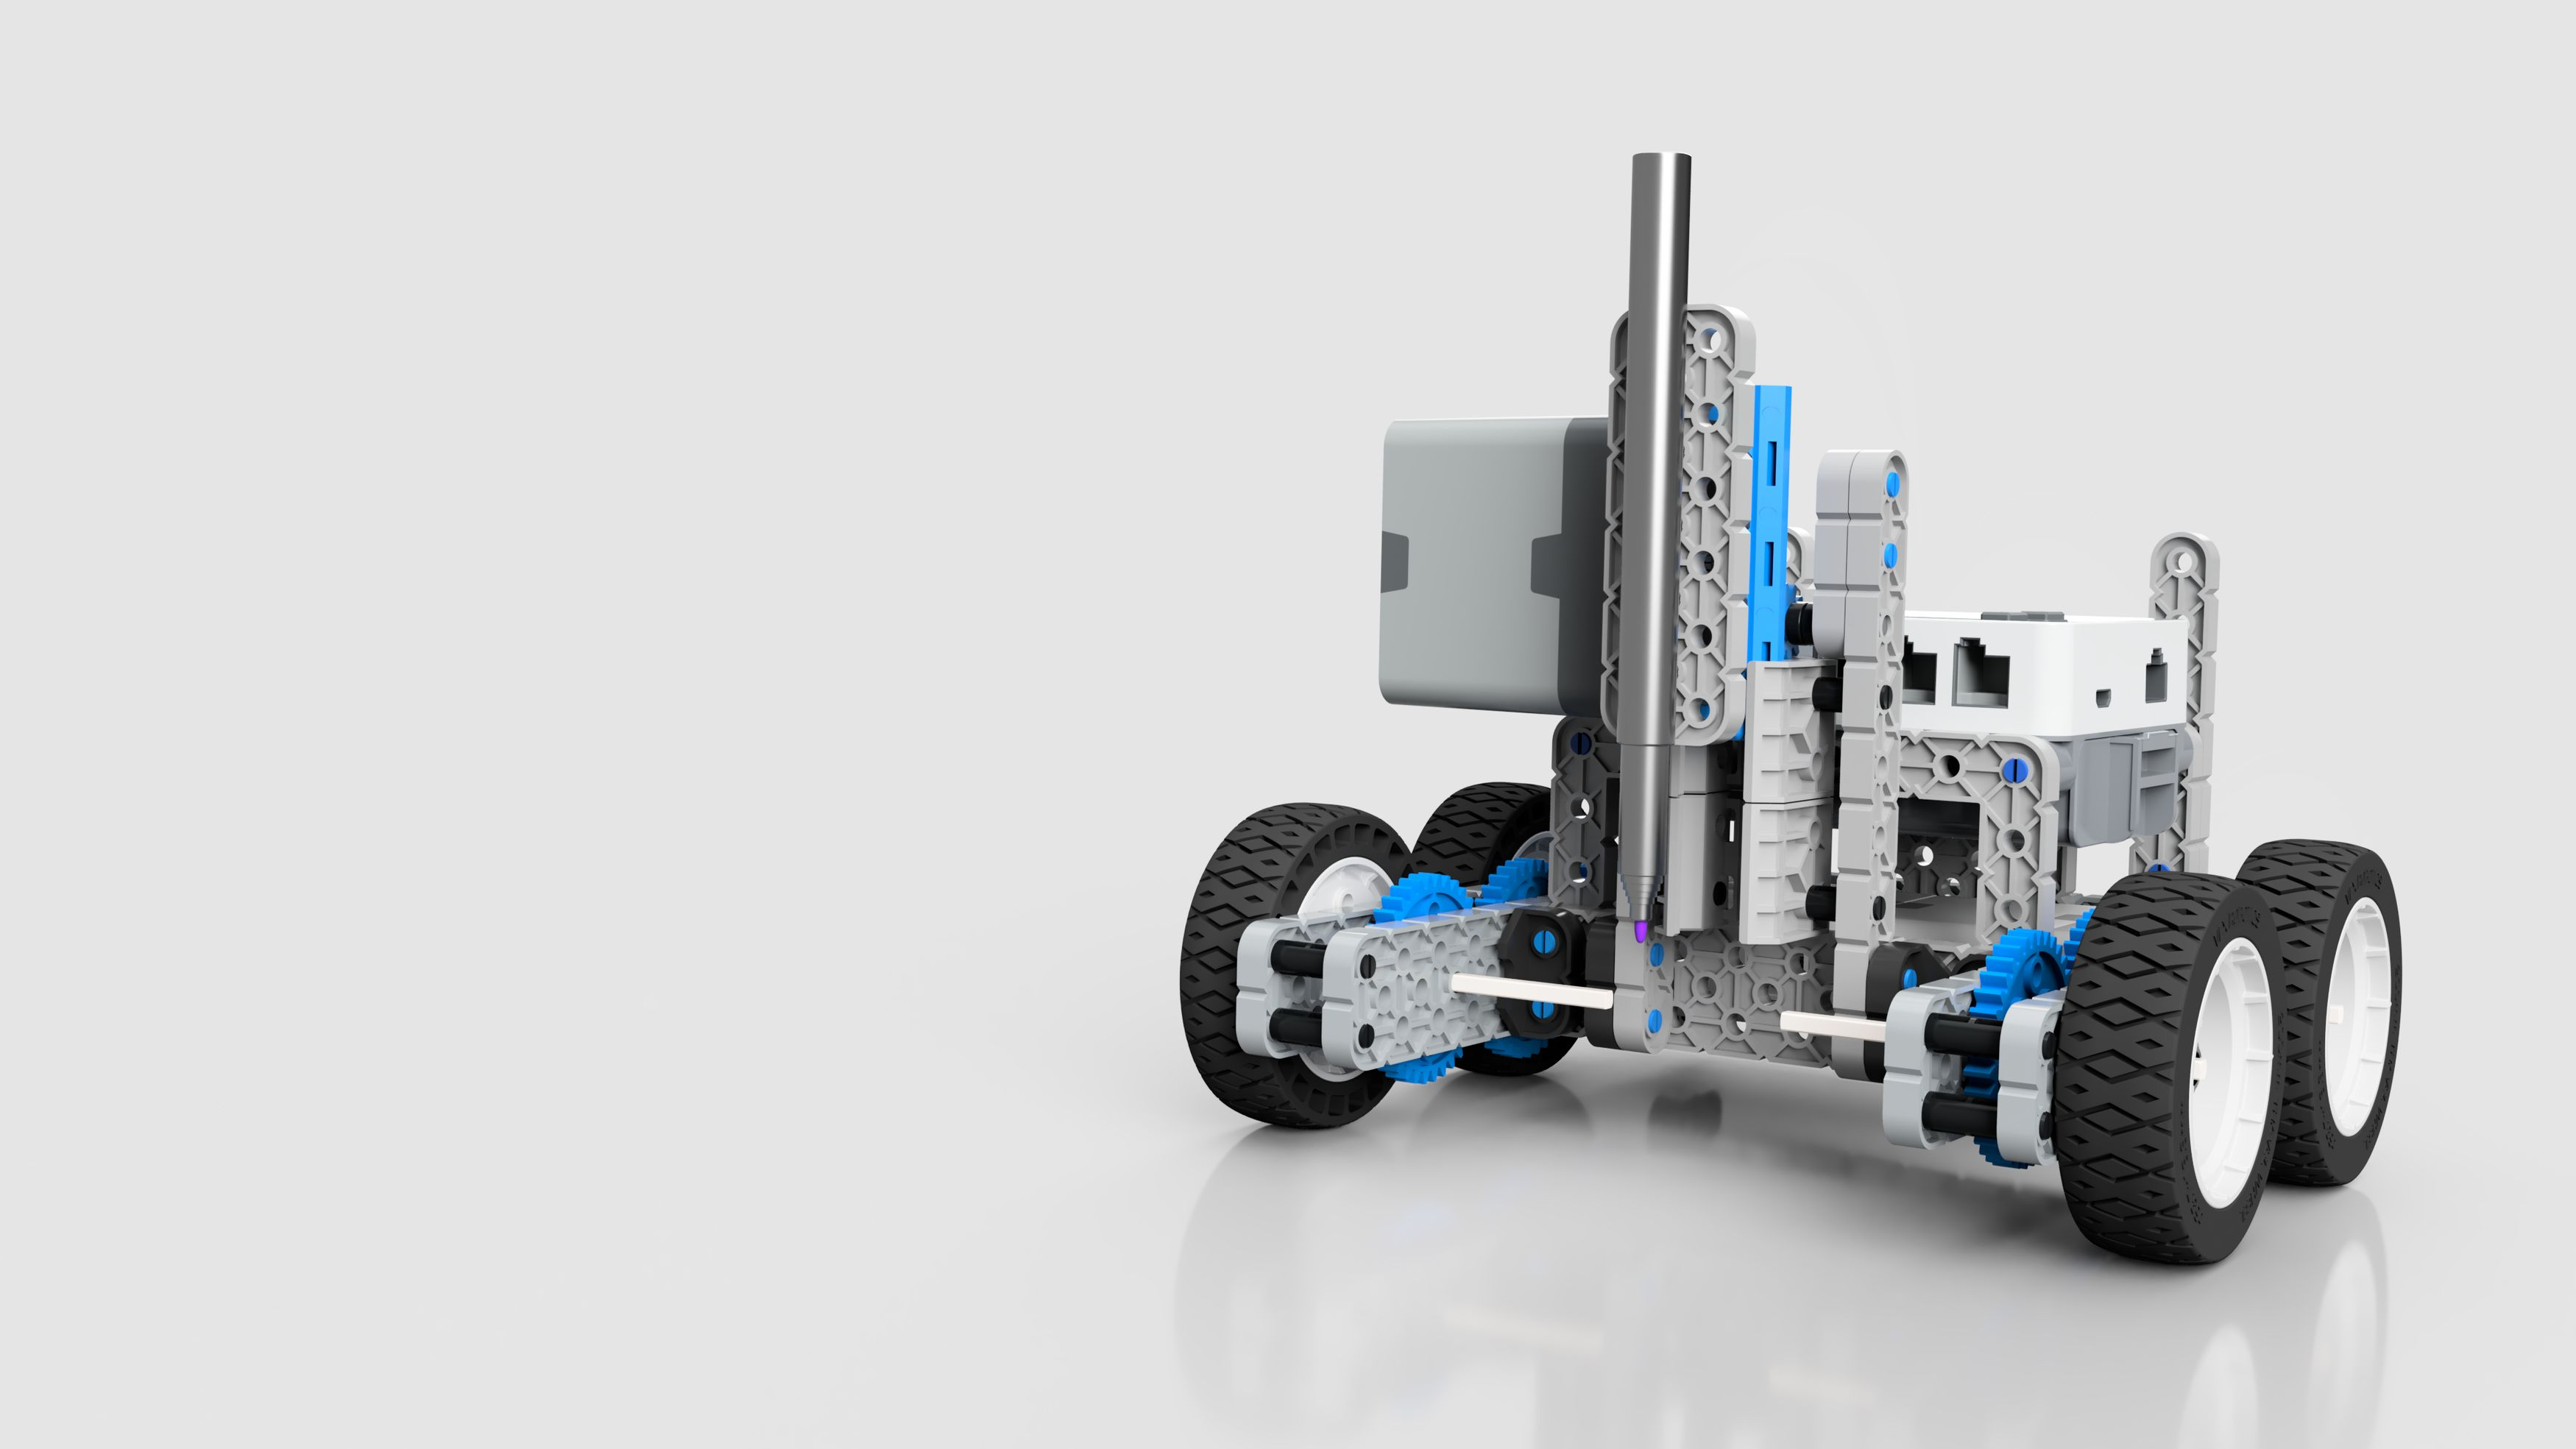 Vex-iq-robot-caneta-2020-may-21-06-29-32pm-000-customizedview2067862356-png-3500-3500